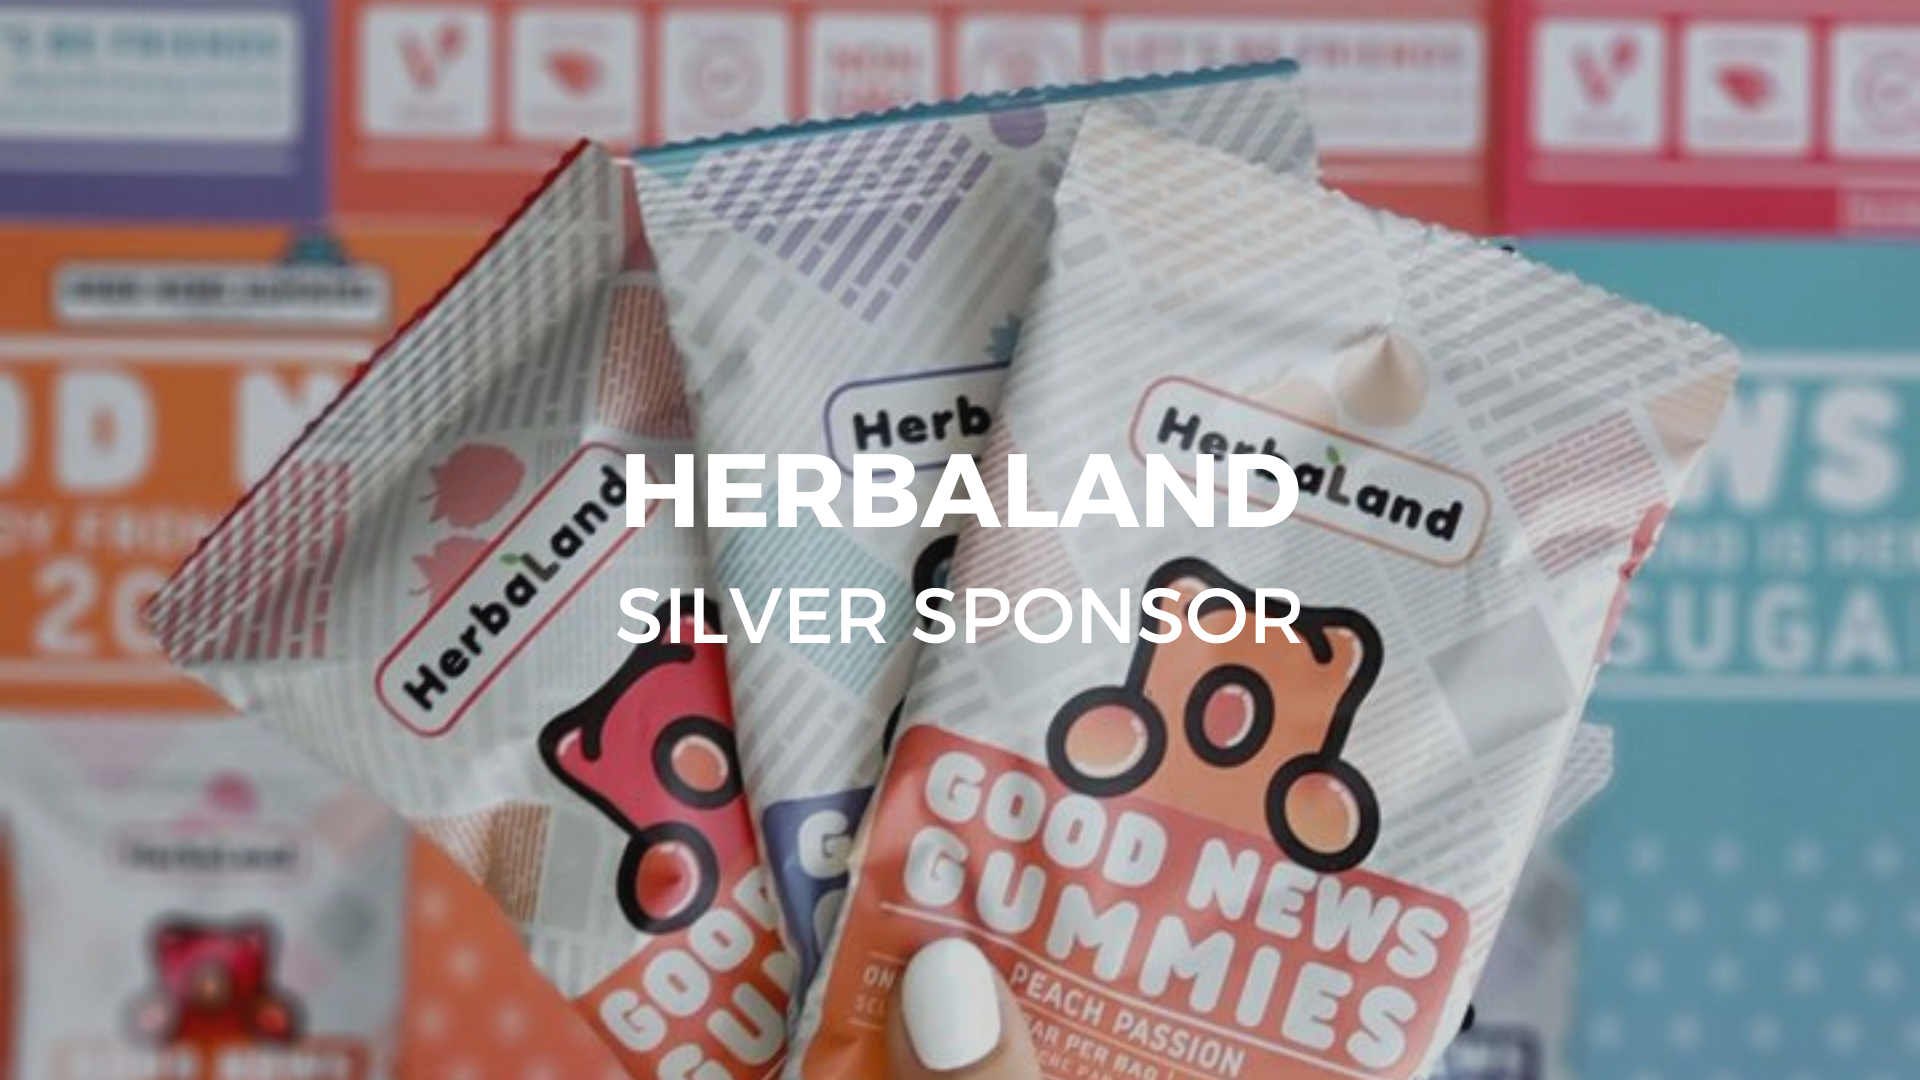 Herbaland makes delicious, natural, nutritional vitamins and supplement gummies for kids, adults, athletes and for all your health and wellness needs.